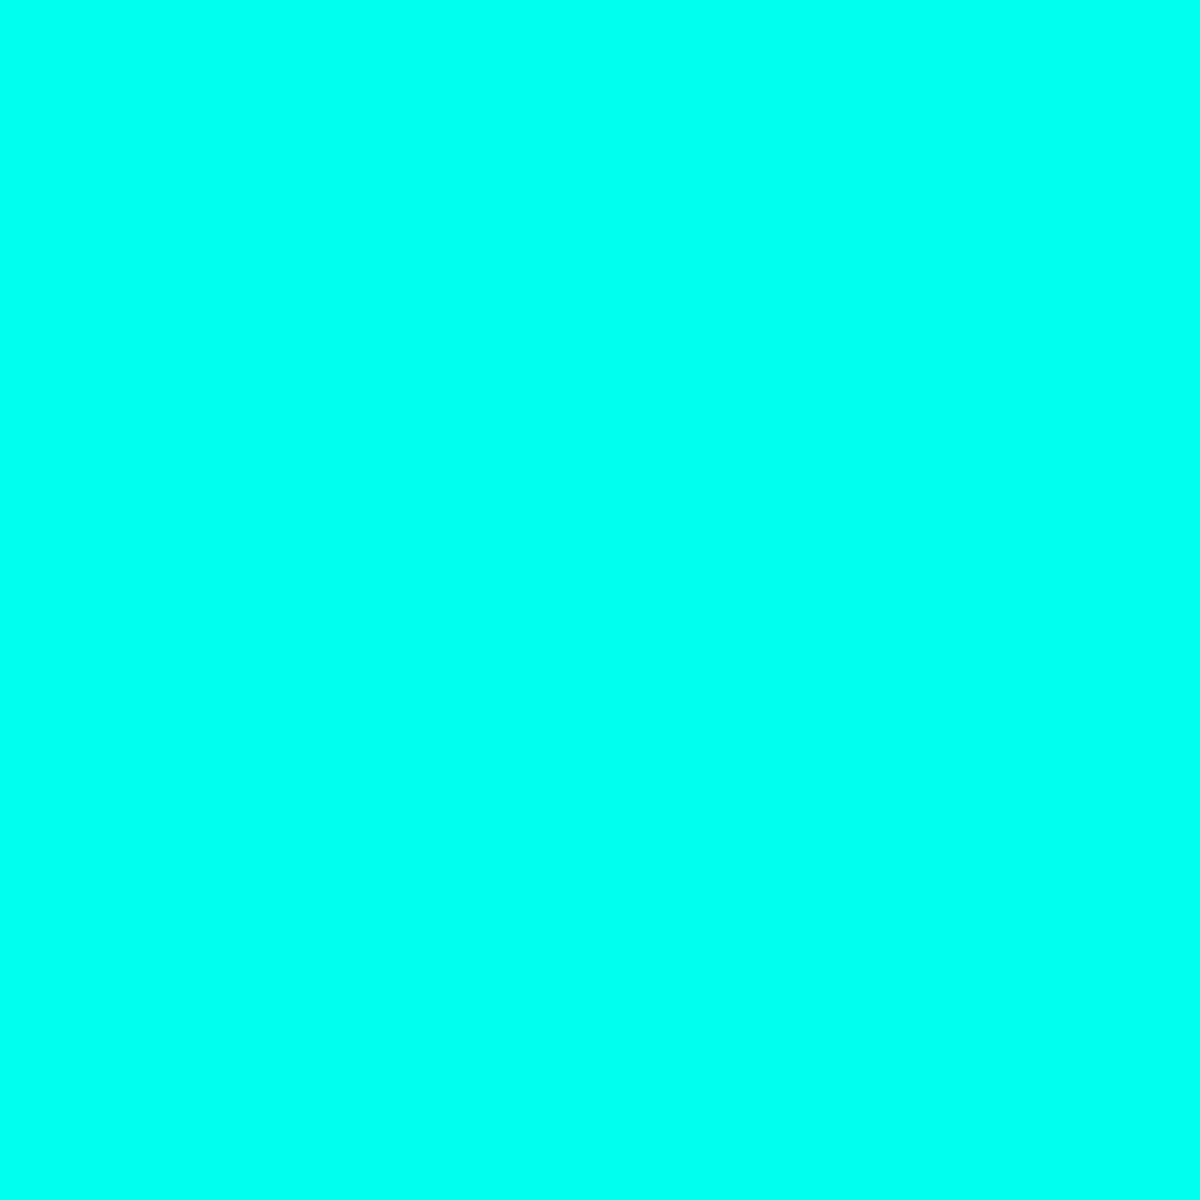 The Mamu On Twitter 1 Turquoise Blue 2 Tiffany Blue 3 Sea Foam Green It S The 2nd One Kan